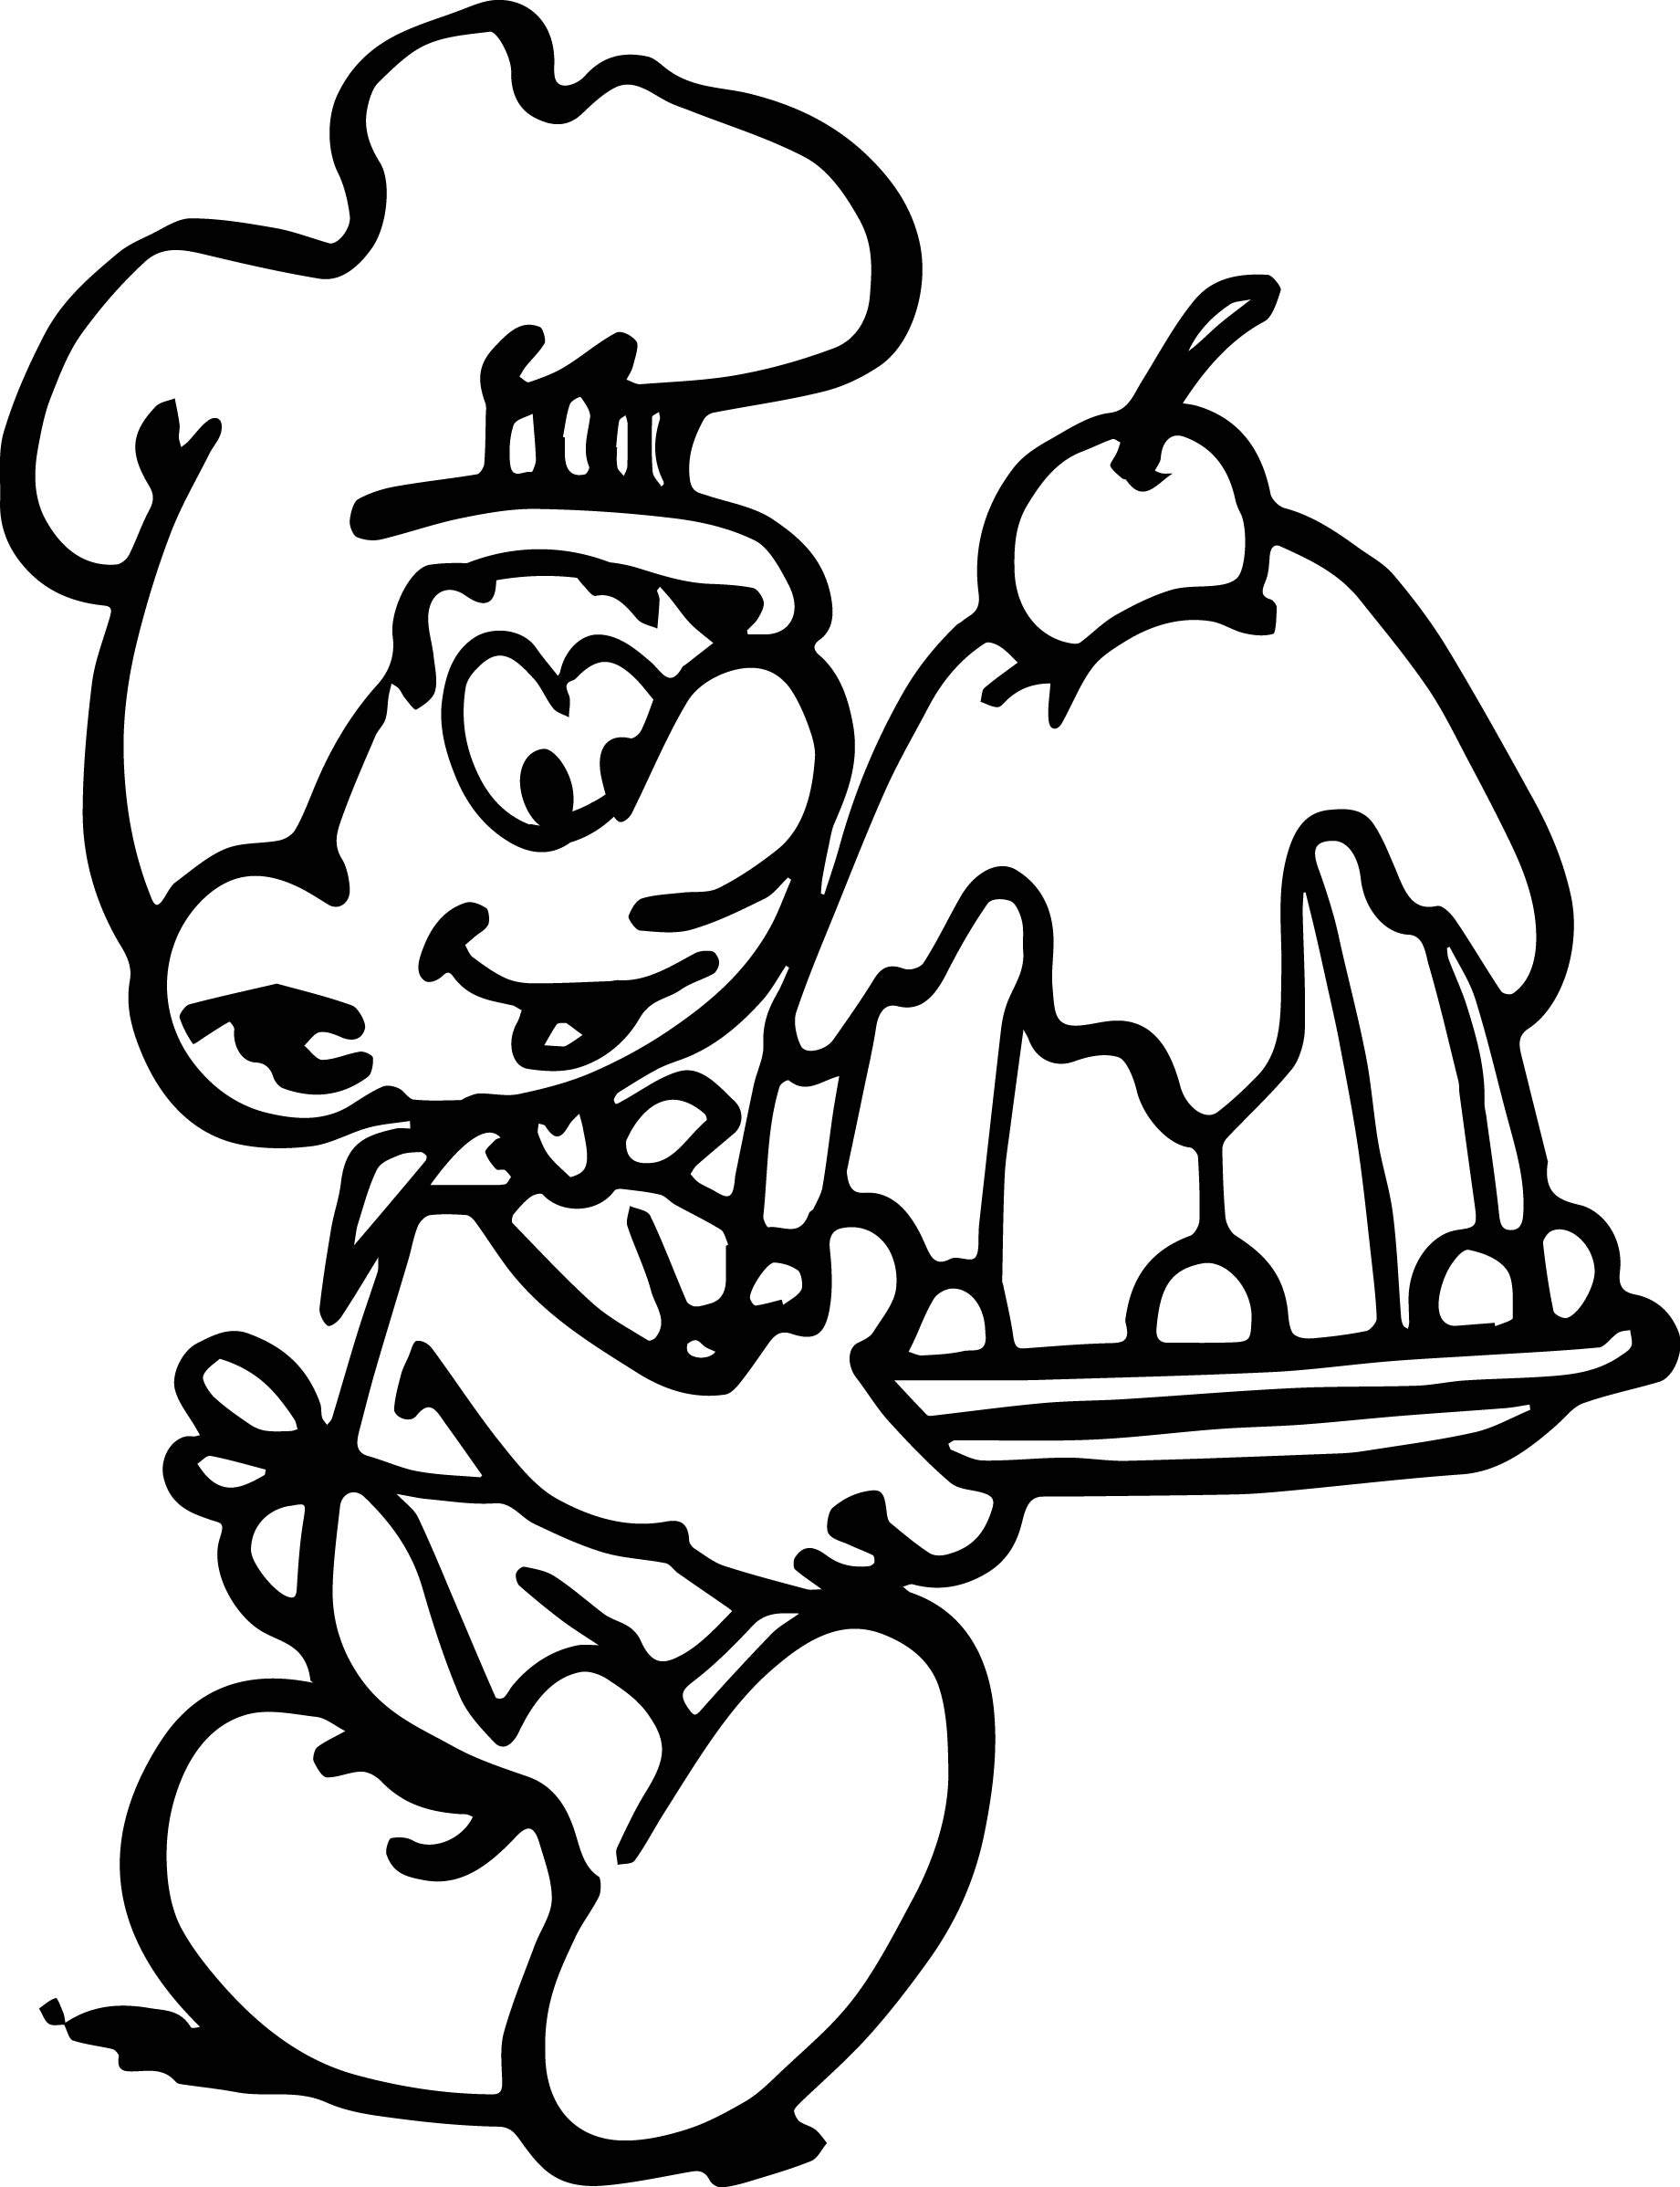 Baker Smurf Making Cake Coloring Page